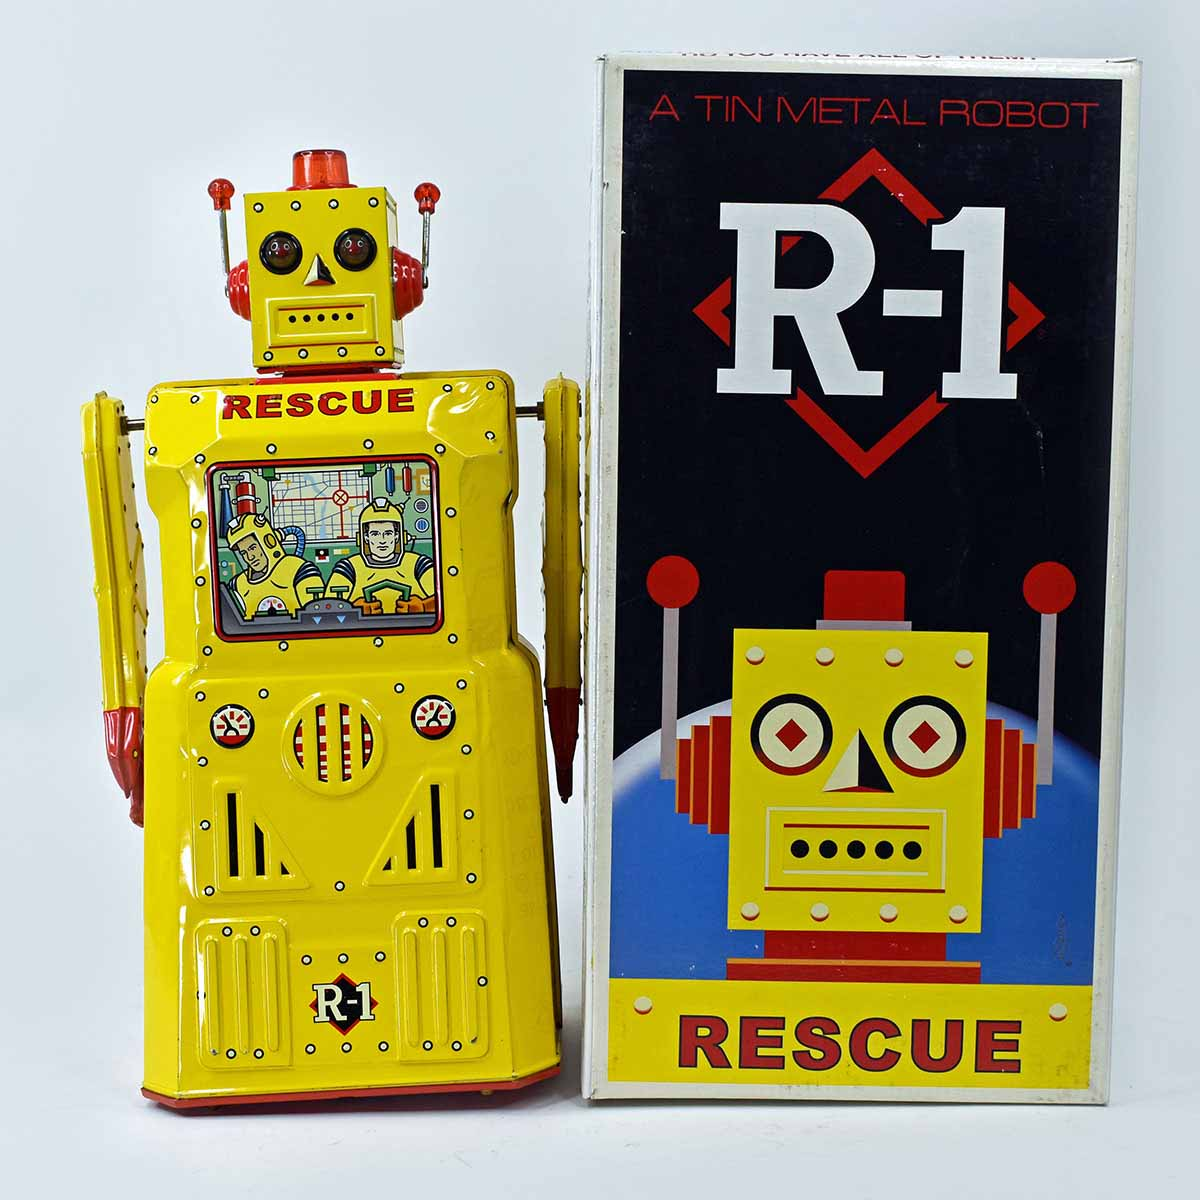 Rocket USA 'Rescue Robot' R-1 Battery Operated